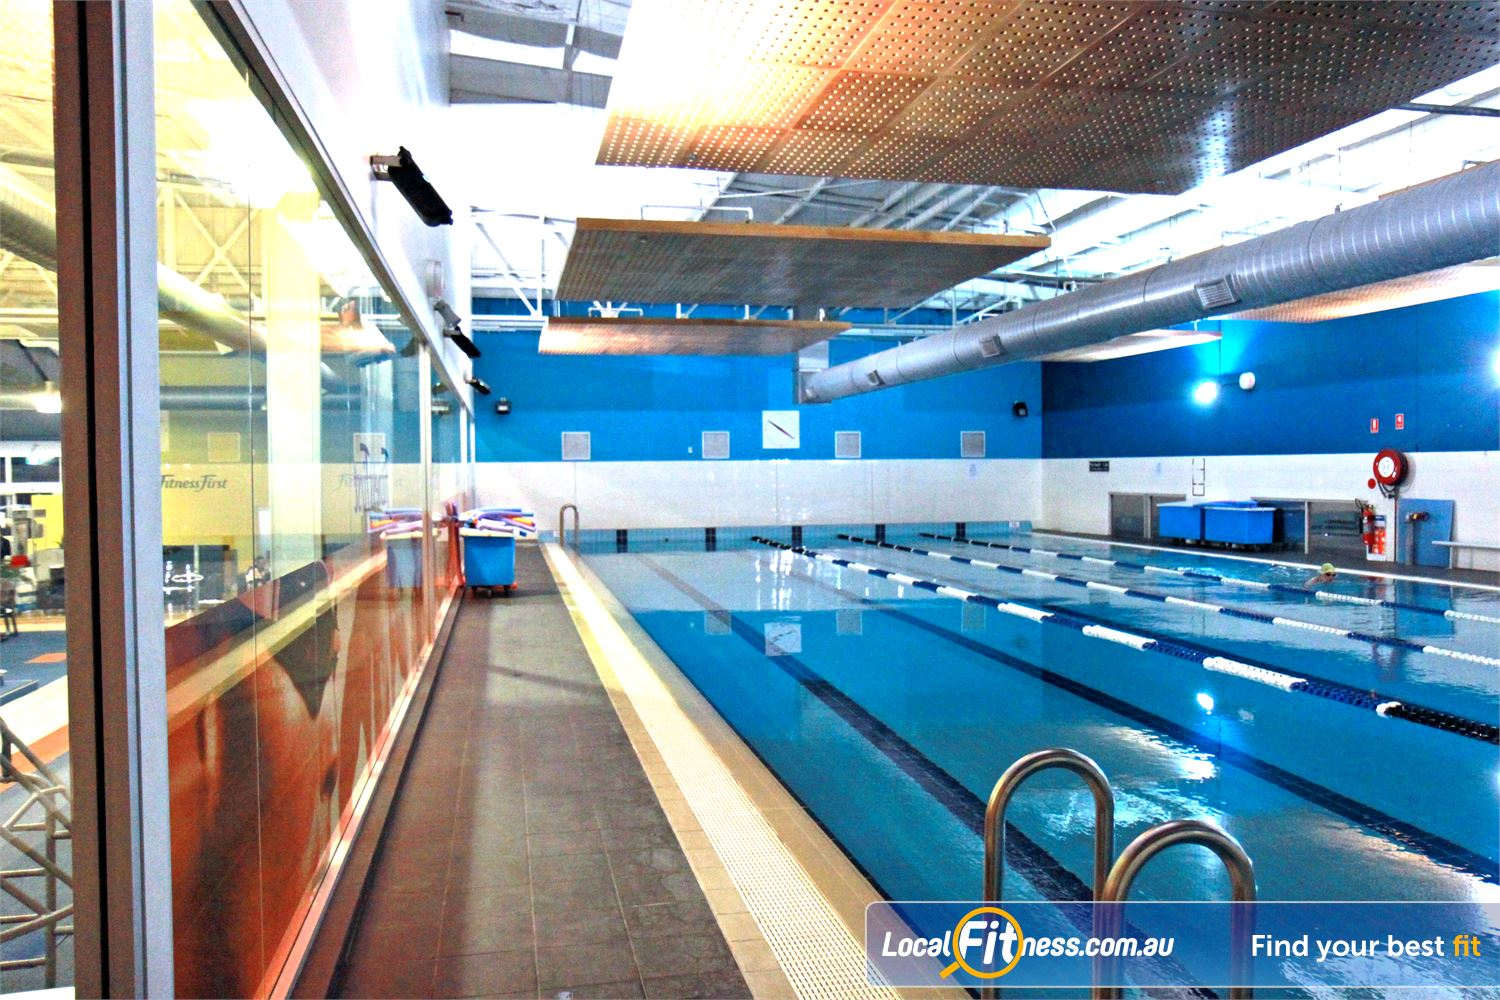 Fitness First Near Monterey Lap swimming in our Rockdale swimming pool.